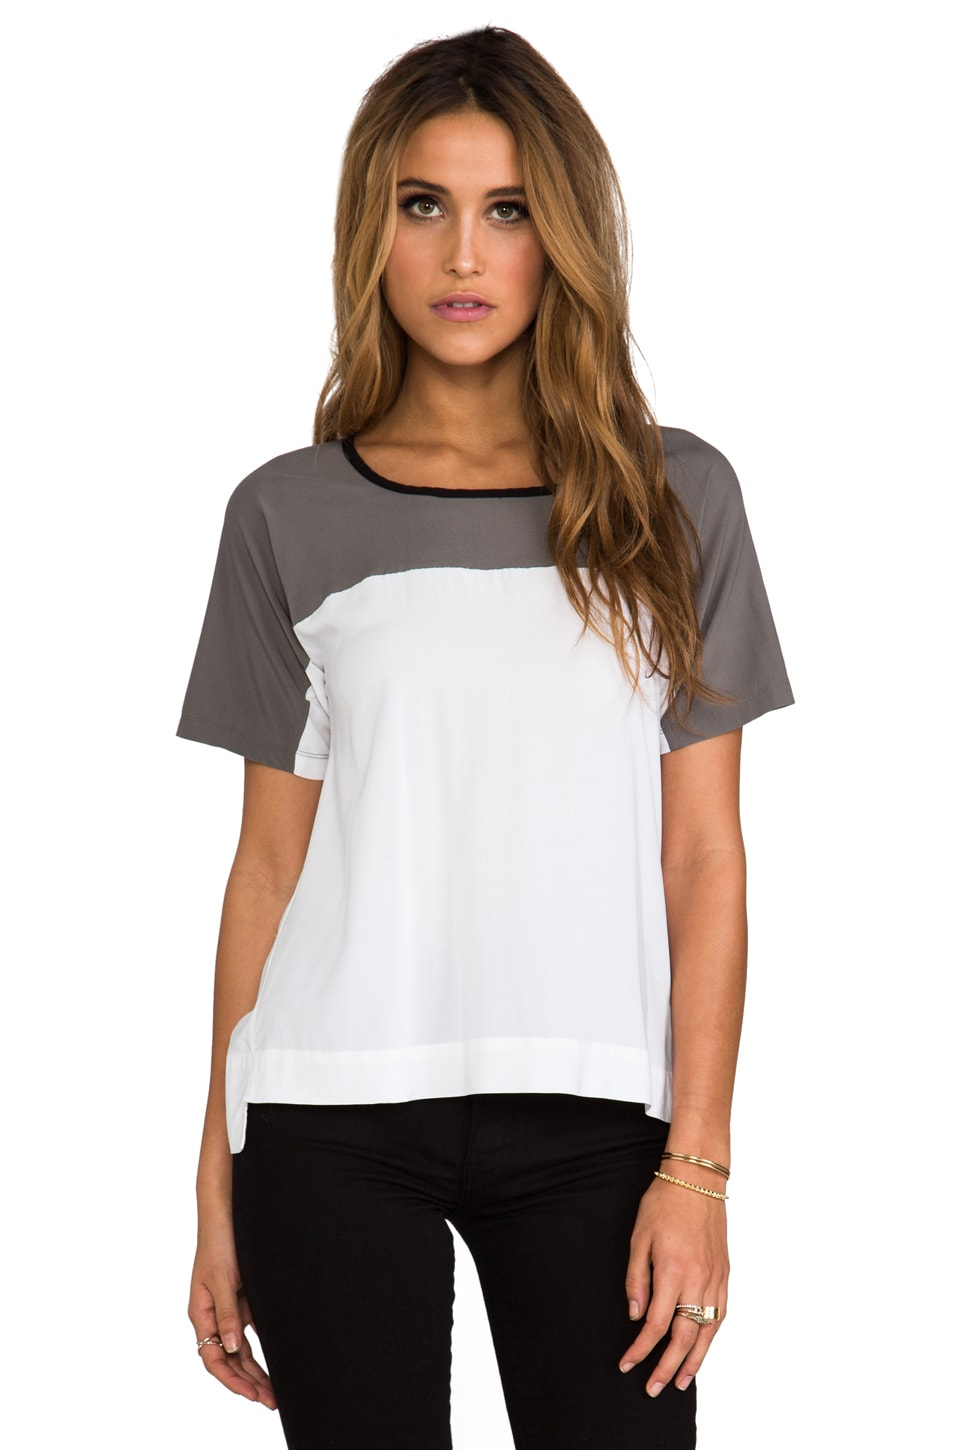 James Perse Colorblock Tee in White/Spruce/Black